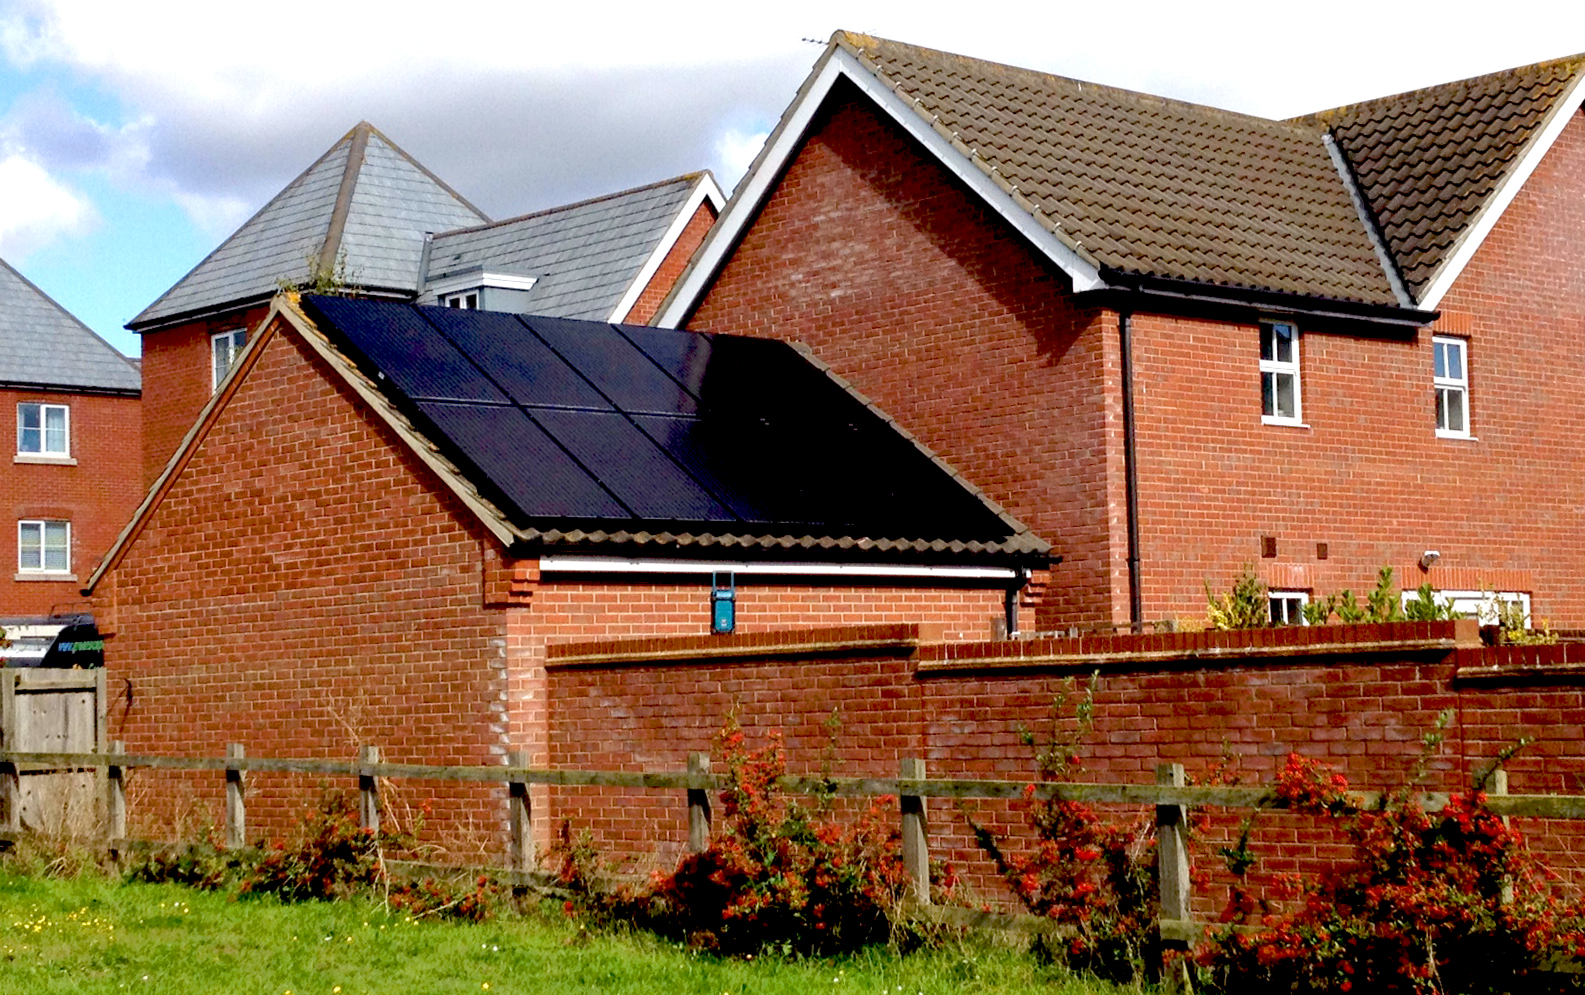 Solar installation by Greenscape Energy in Kesgrave, near Ipswich